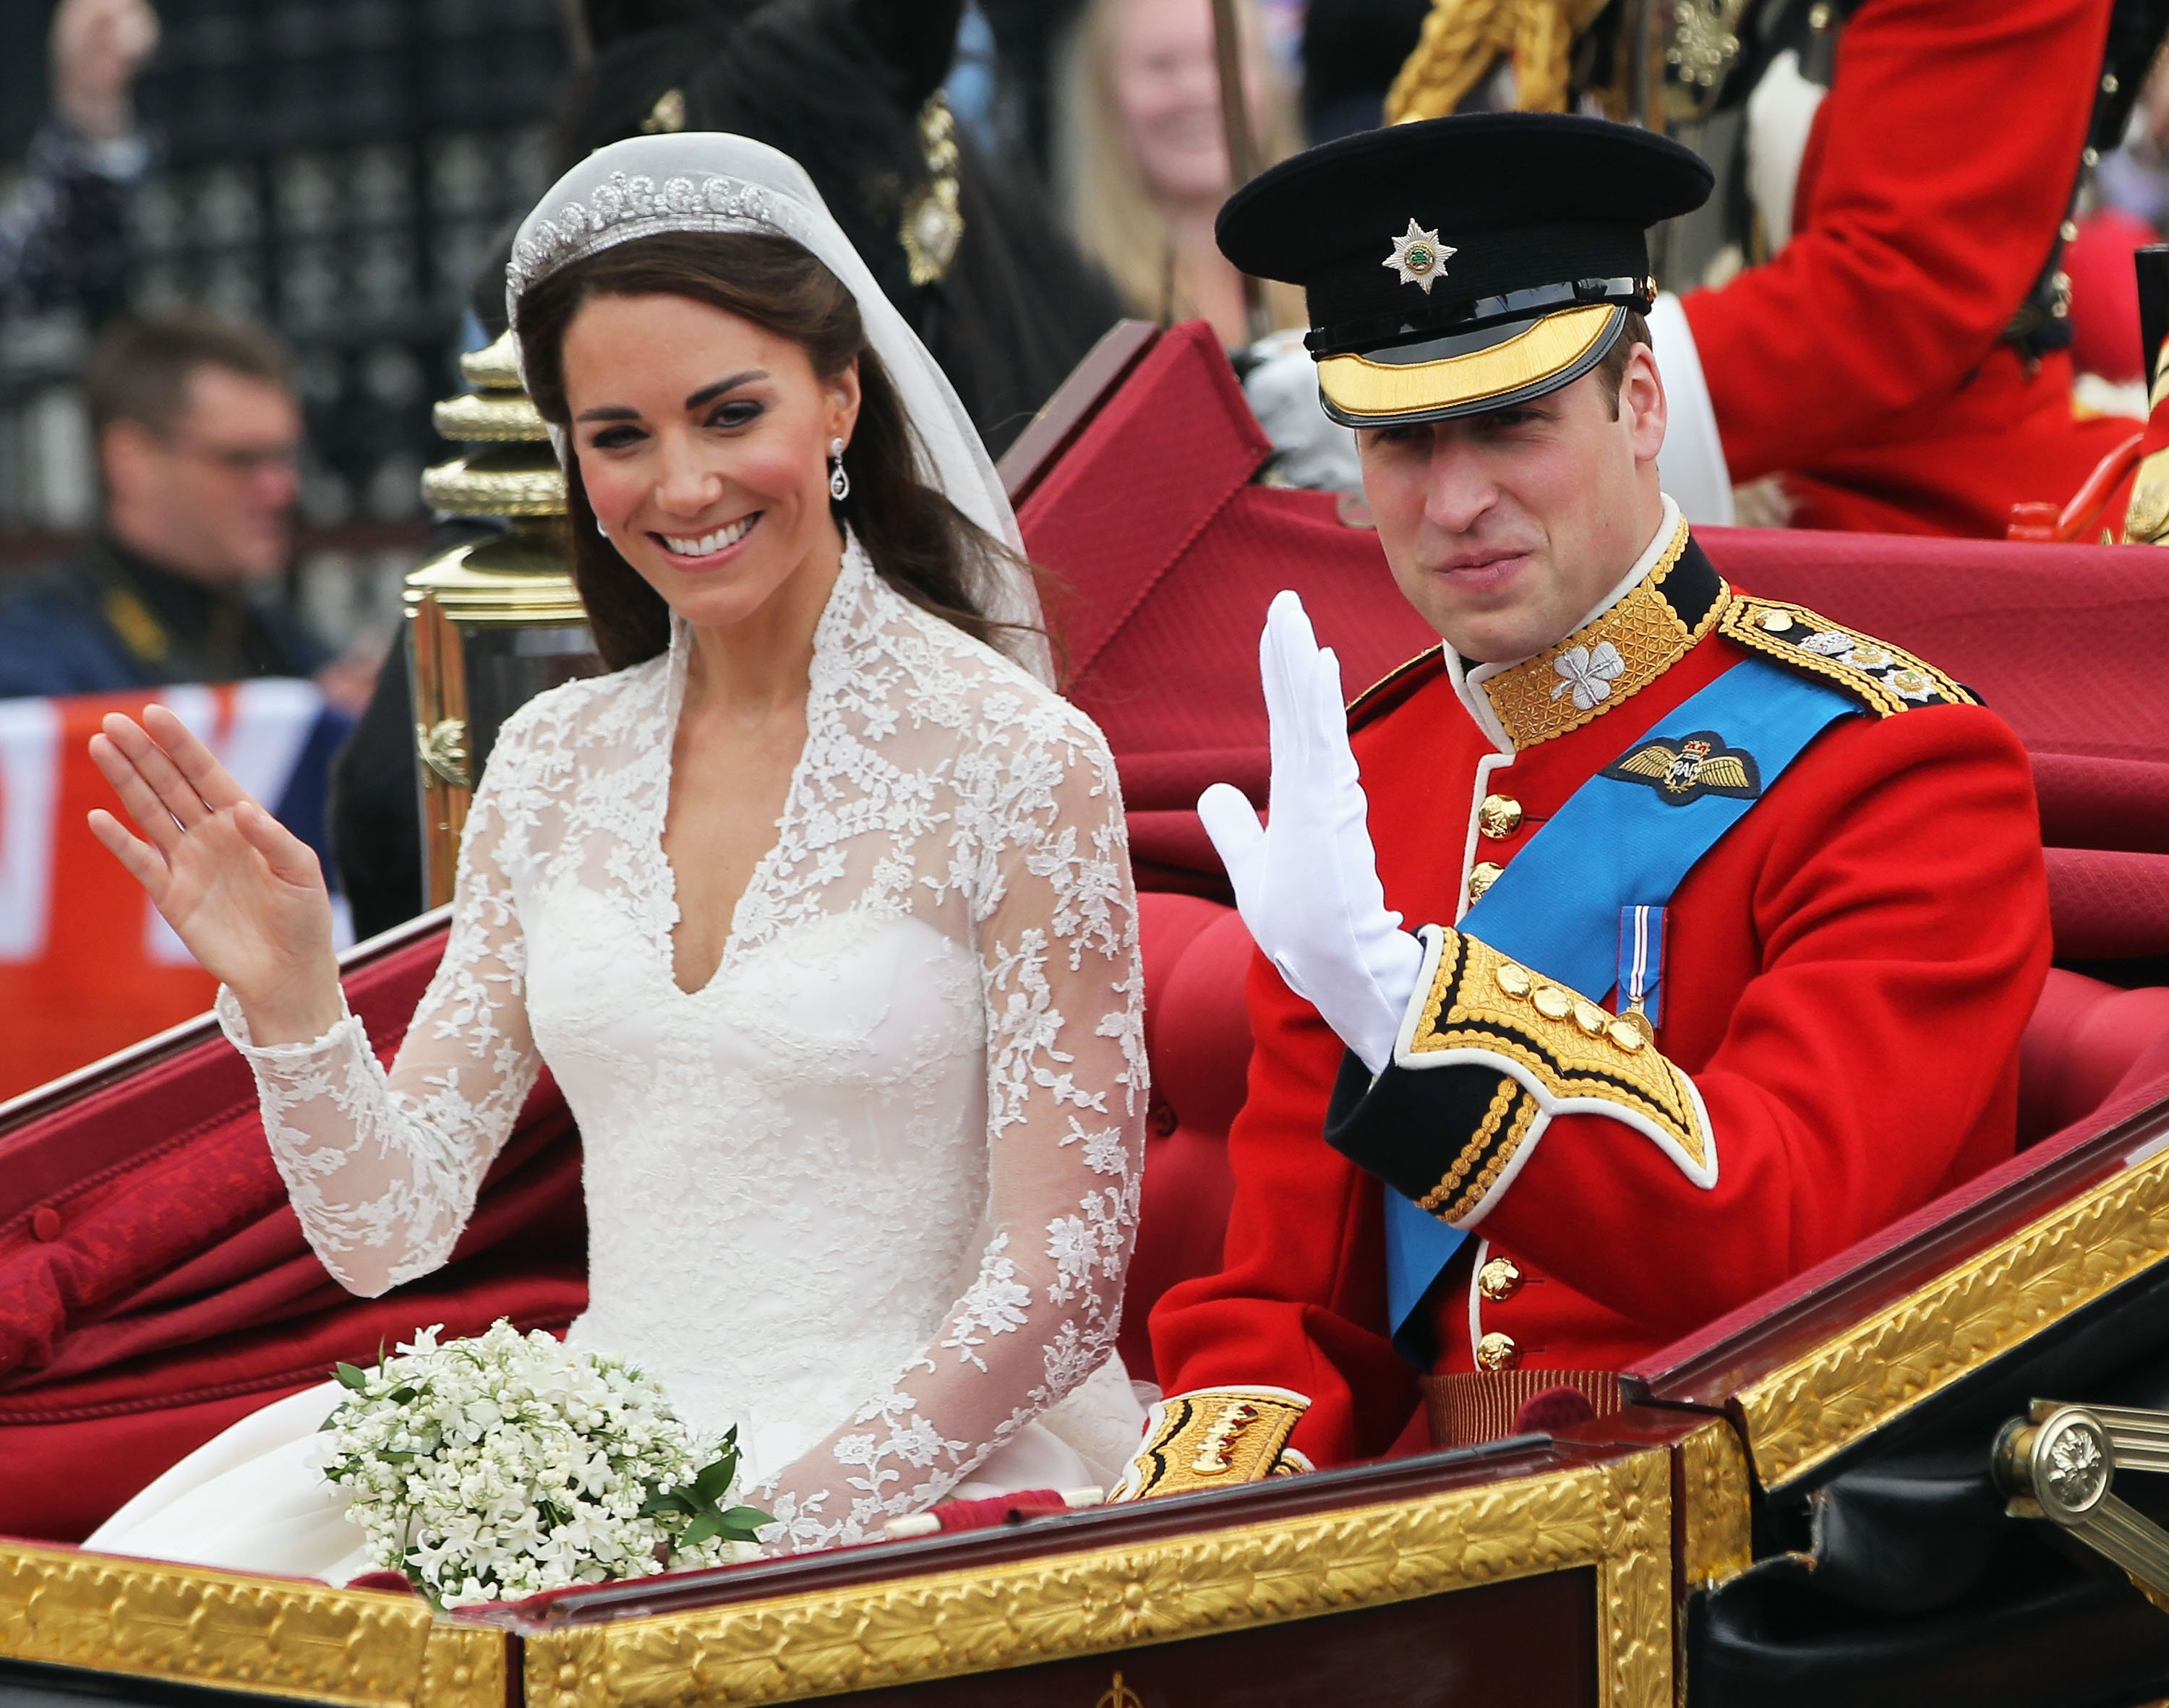 Prince William, Duke of Cambridge and Catherine, Duchess of Cambridge journey by carriage procession to Buckingham Palace following their marriage at Westminster Abbey on April 29, 2011 in London, England. | Photo: GettyImages